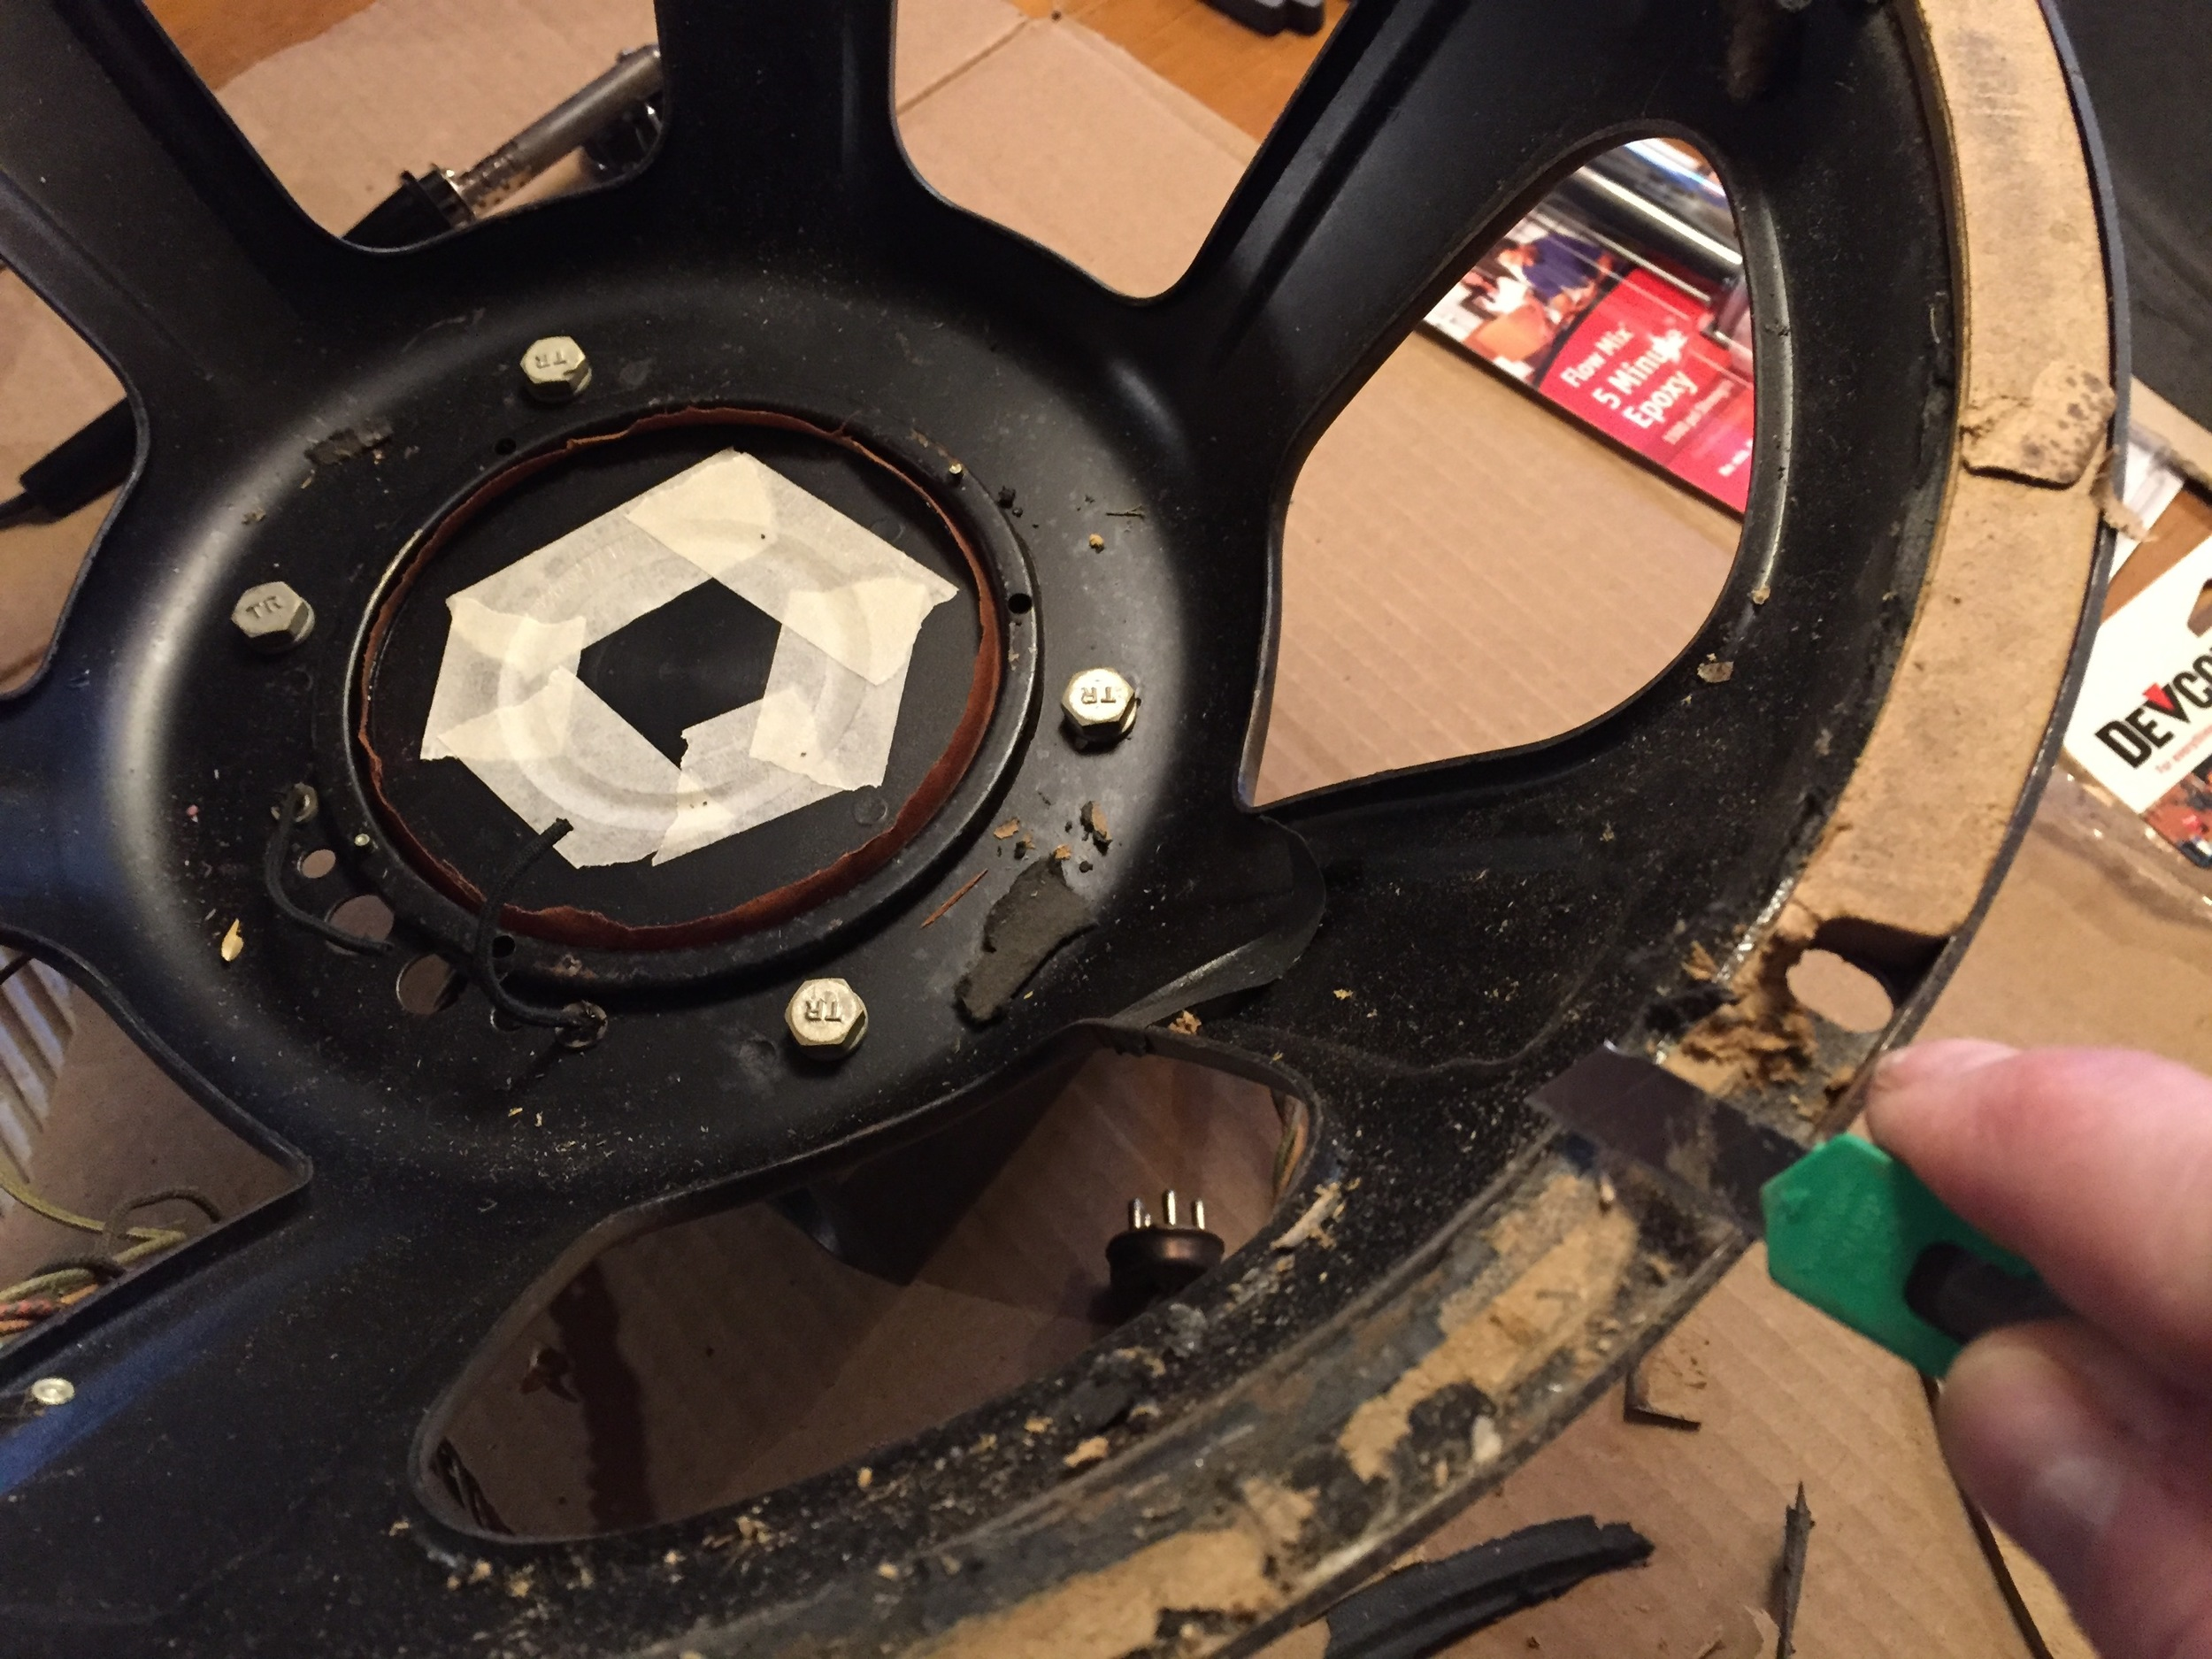 Removing the old gasket material.